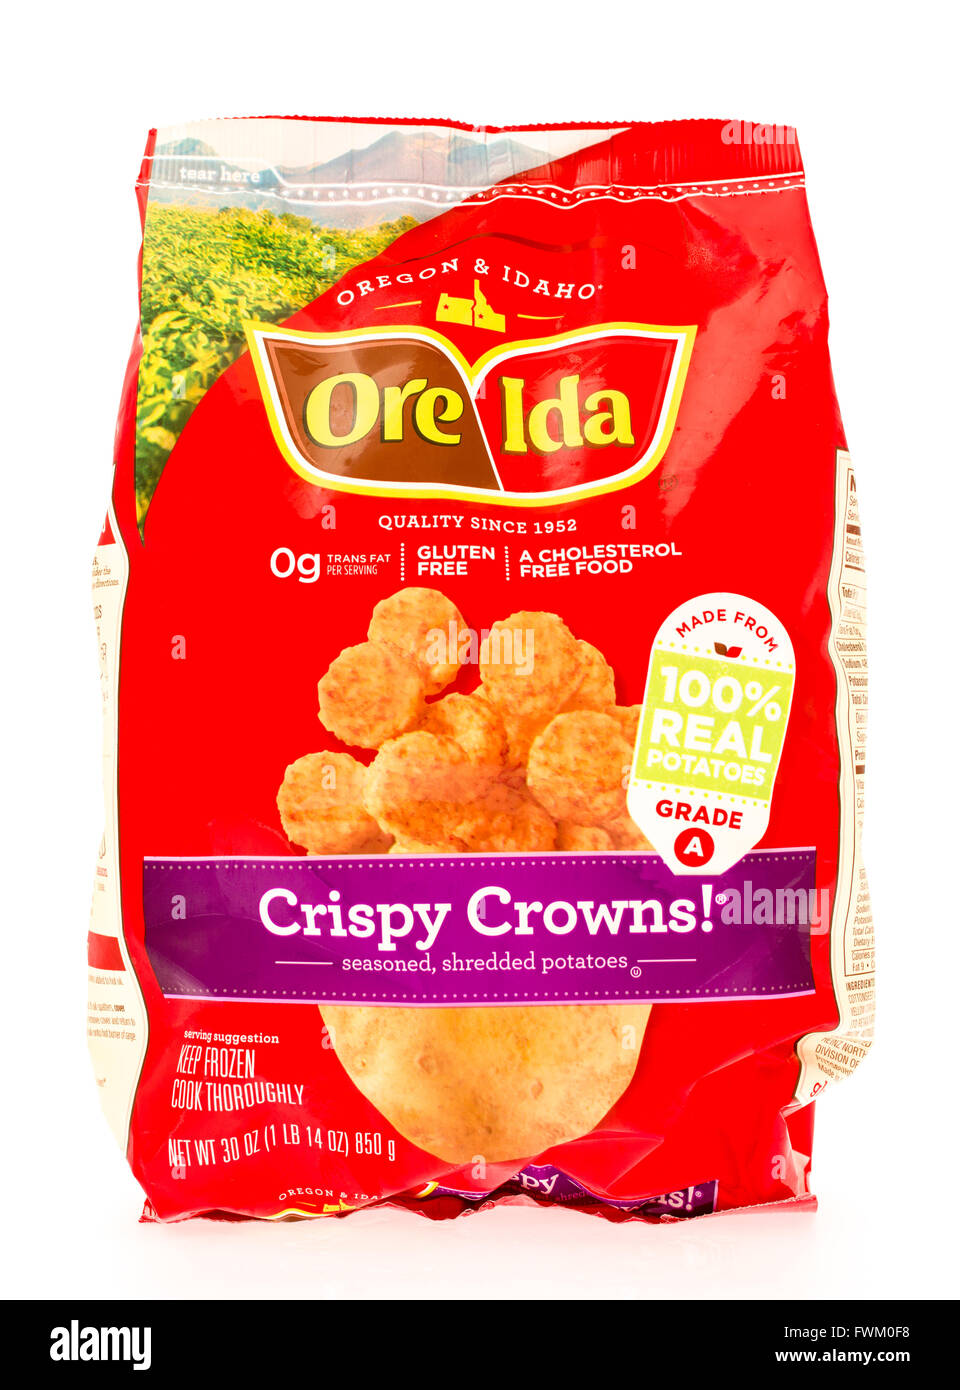 Winneconne, WI - 29 August 2015: Bag of Ore Ida crispy crowns, made from 100% potatoes. - Stock Image